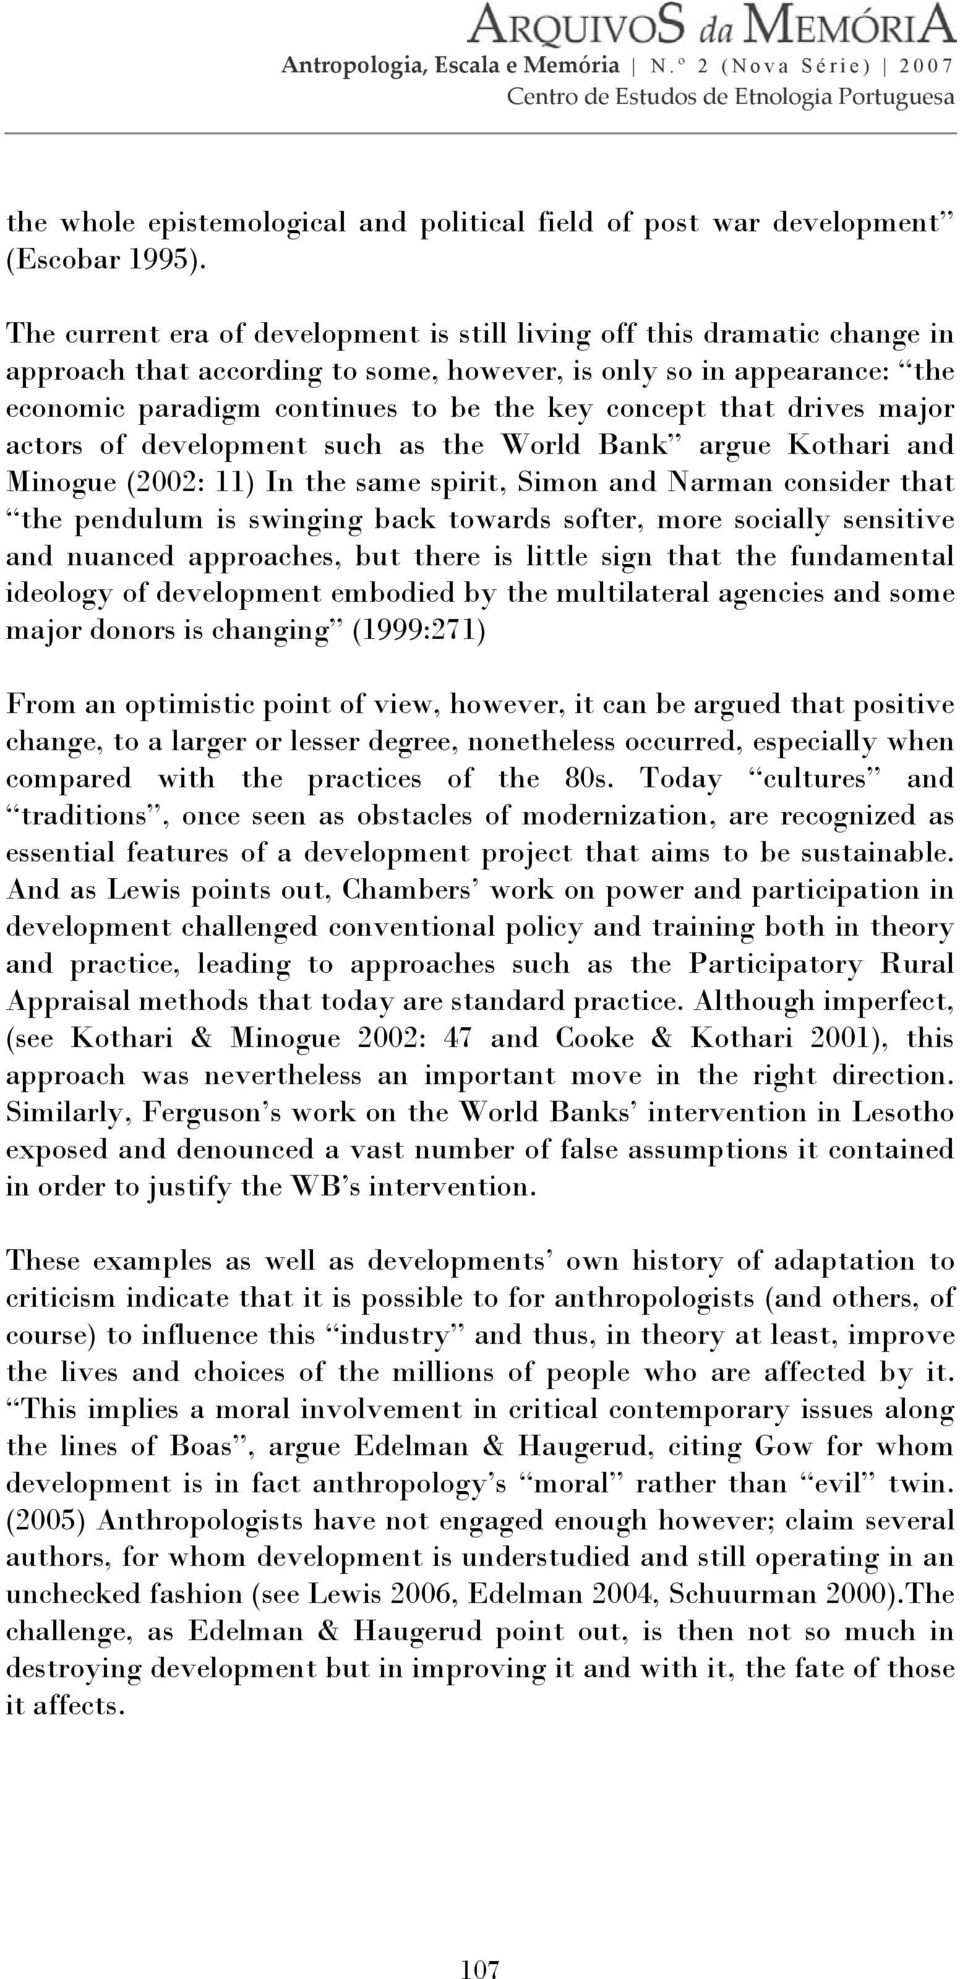 that drives major actors of development such as the World Bank argue Kothari and Minogue (2002: 11) In the same spirit, Simon and Narman consider that the pendulum is swinging back towards softer,